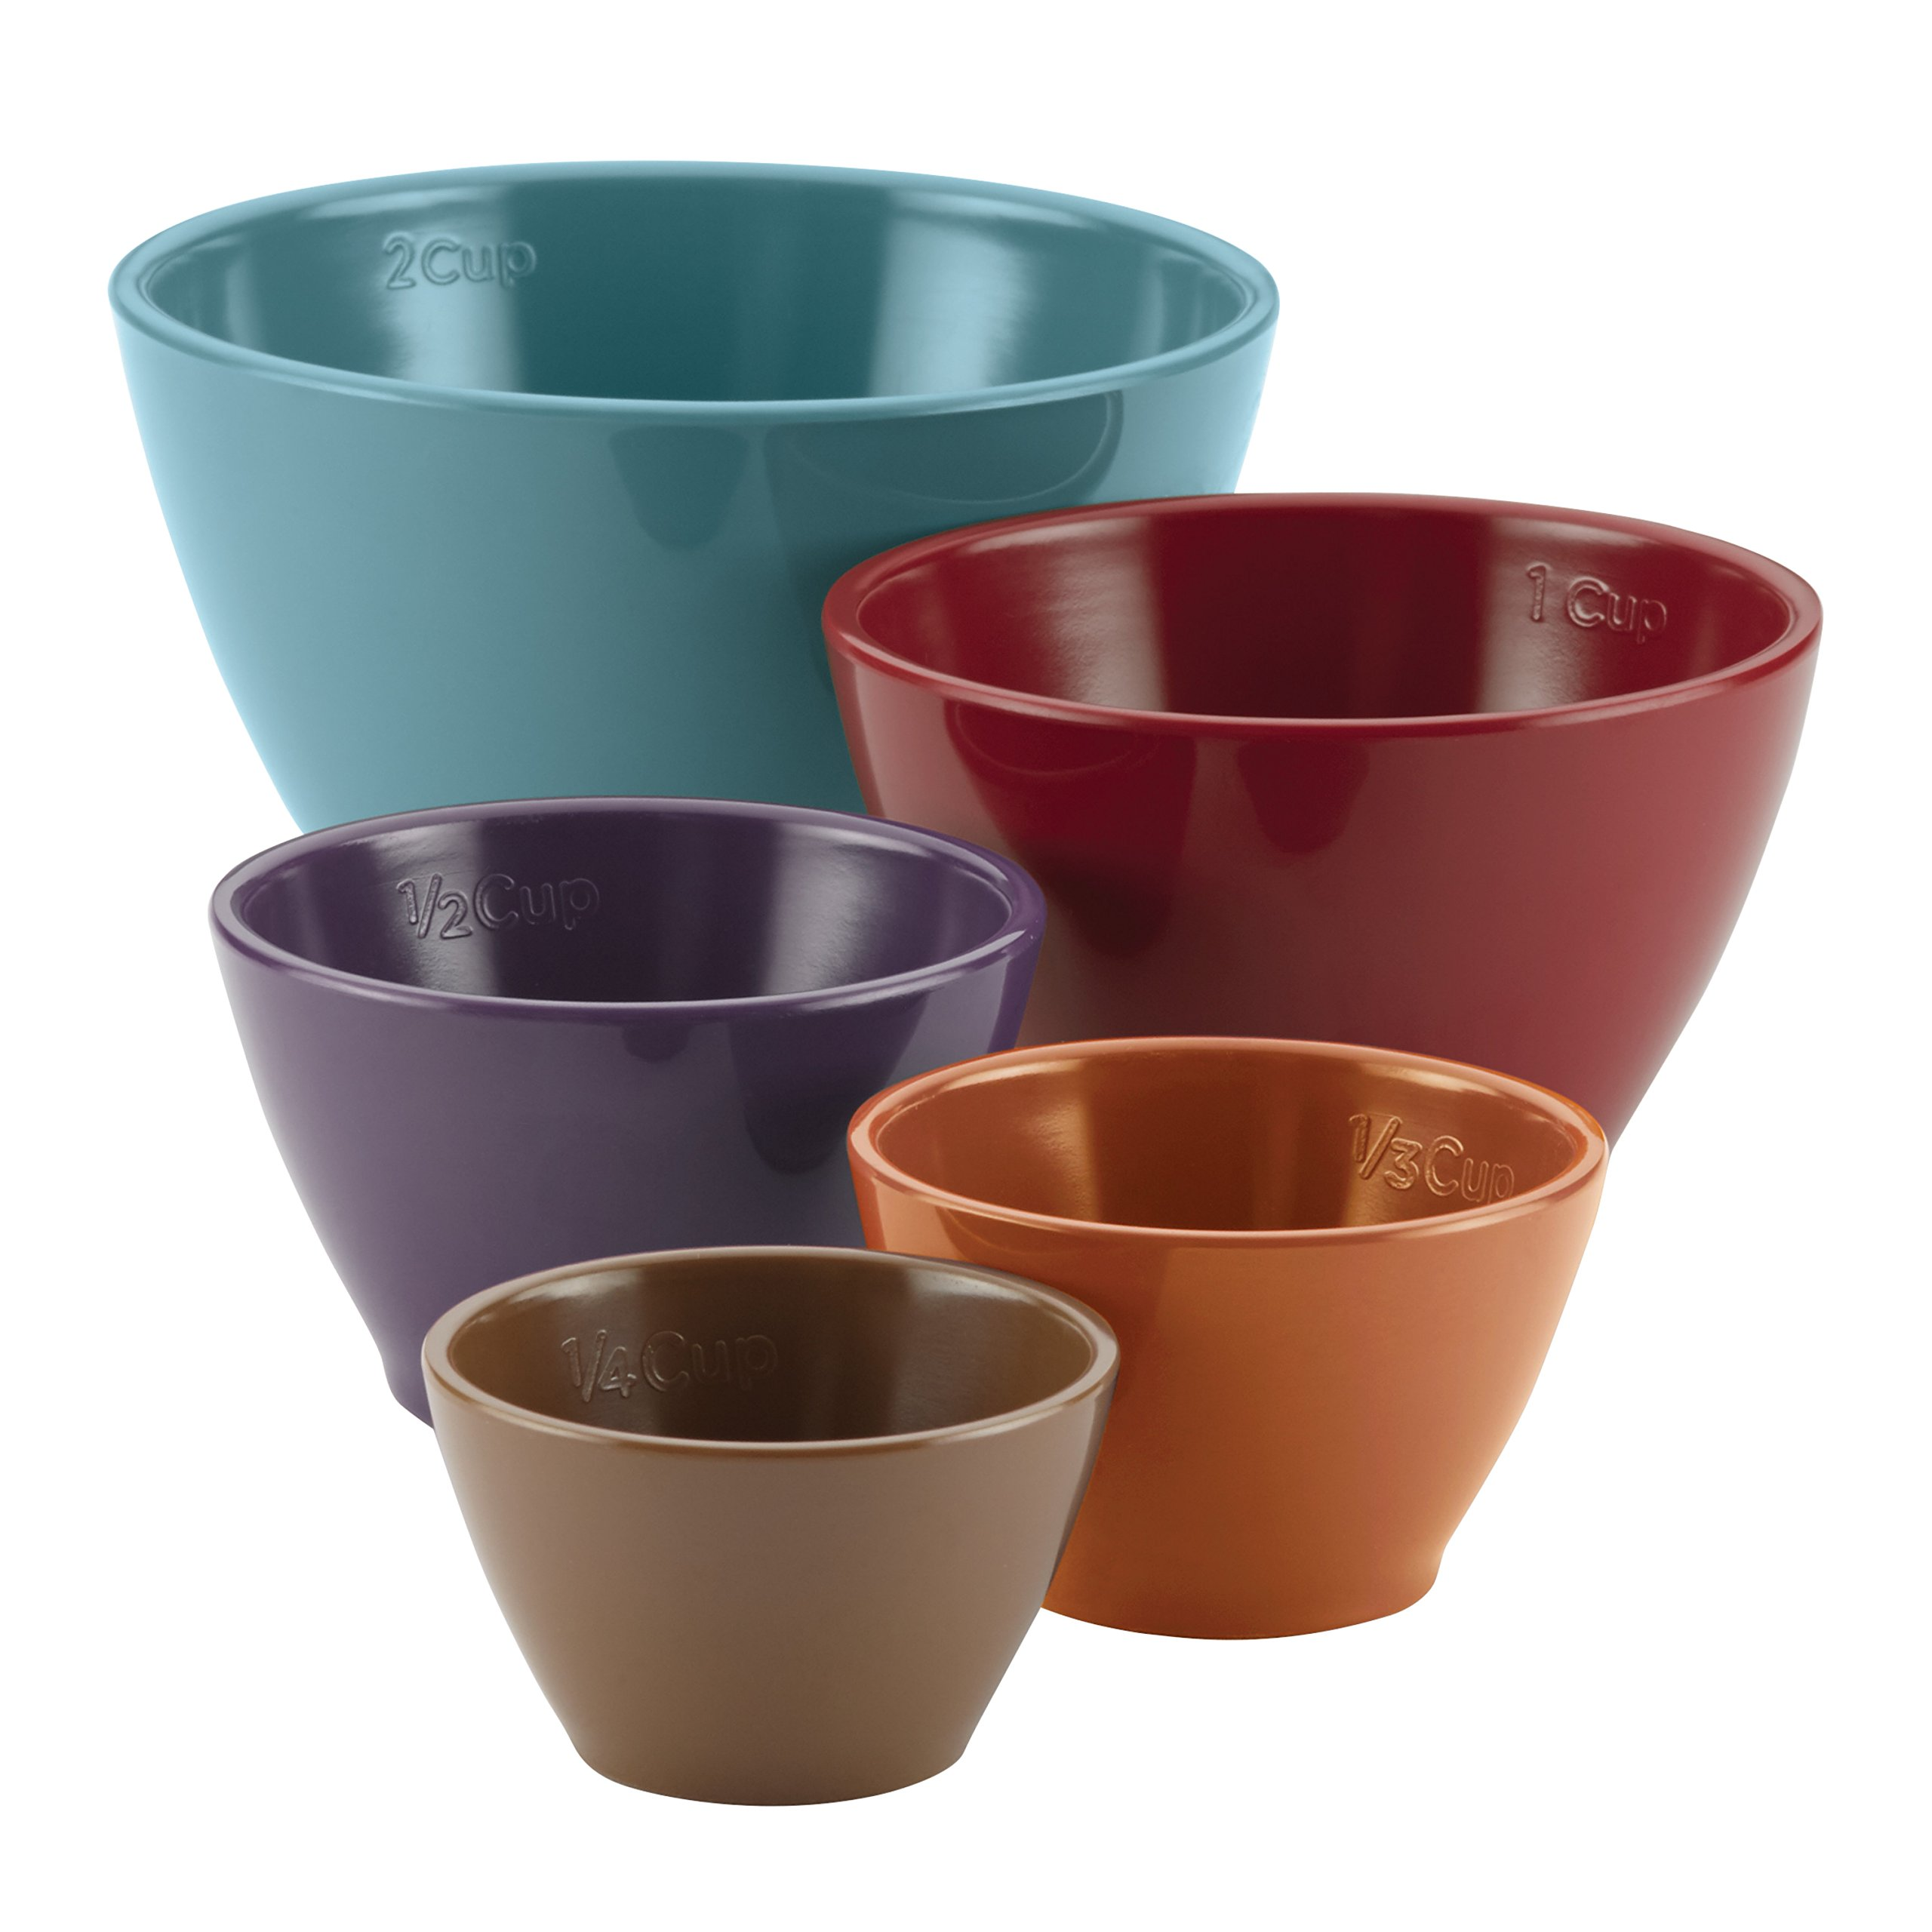 Rachael Ray Cucina Kitchen/Cooking Measuring Cups, Set includes: 1/4-Cup Brown, 1/3-Cup Orange, 1/2-Cup Lavender, 1-Cup Red, 2-Cup Blue, Assorted